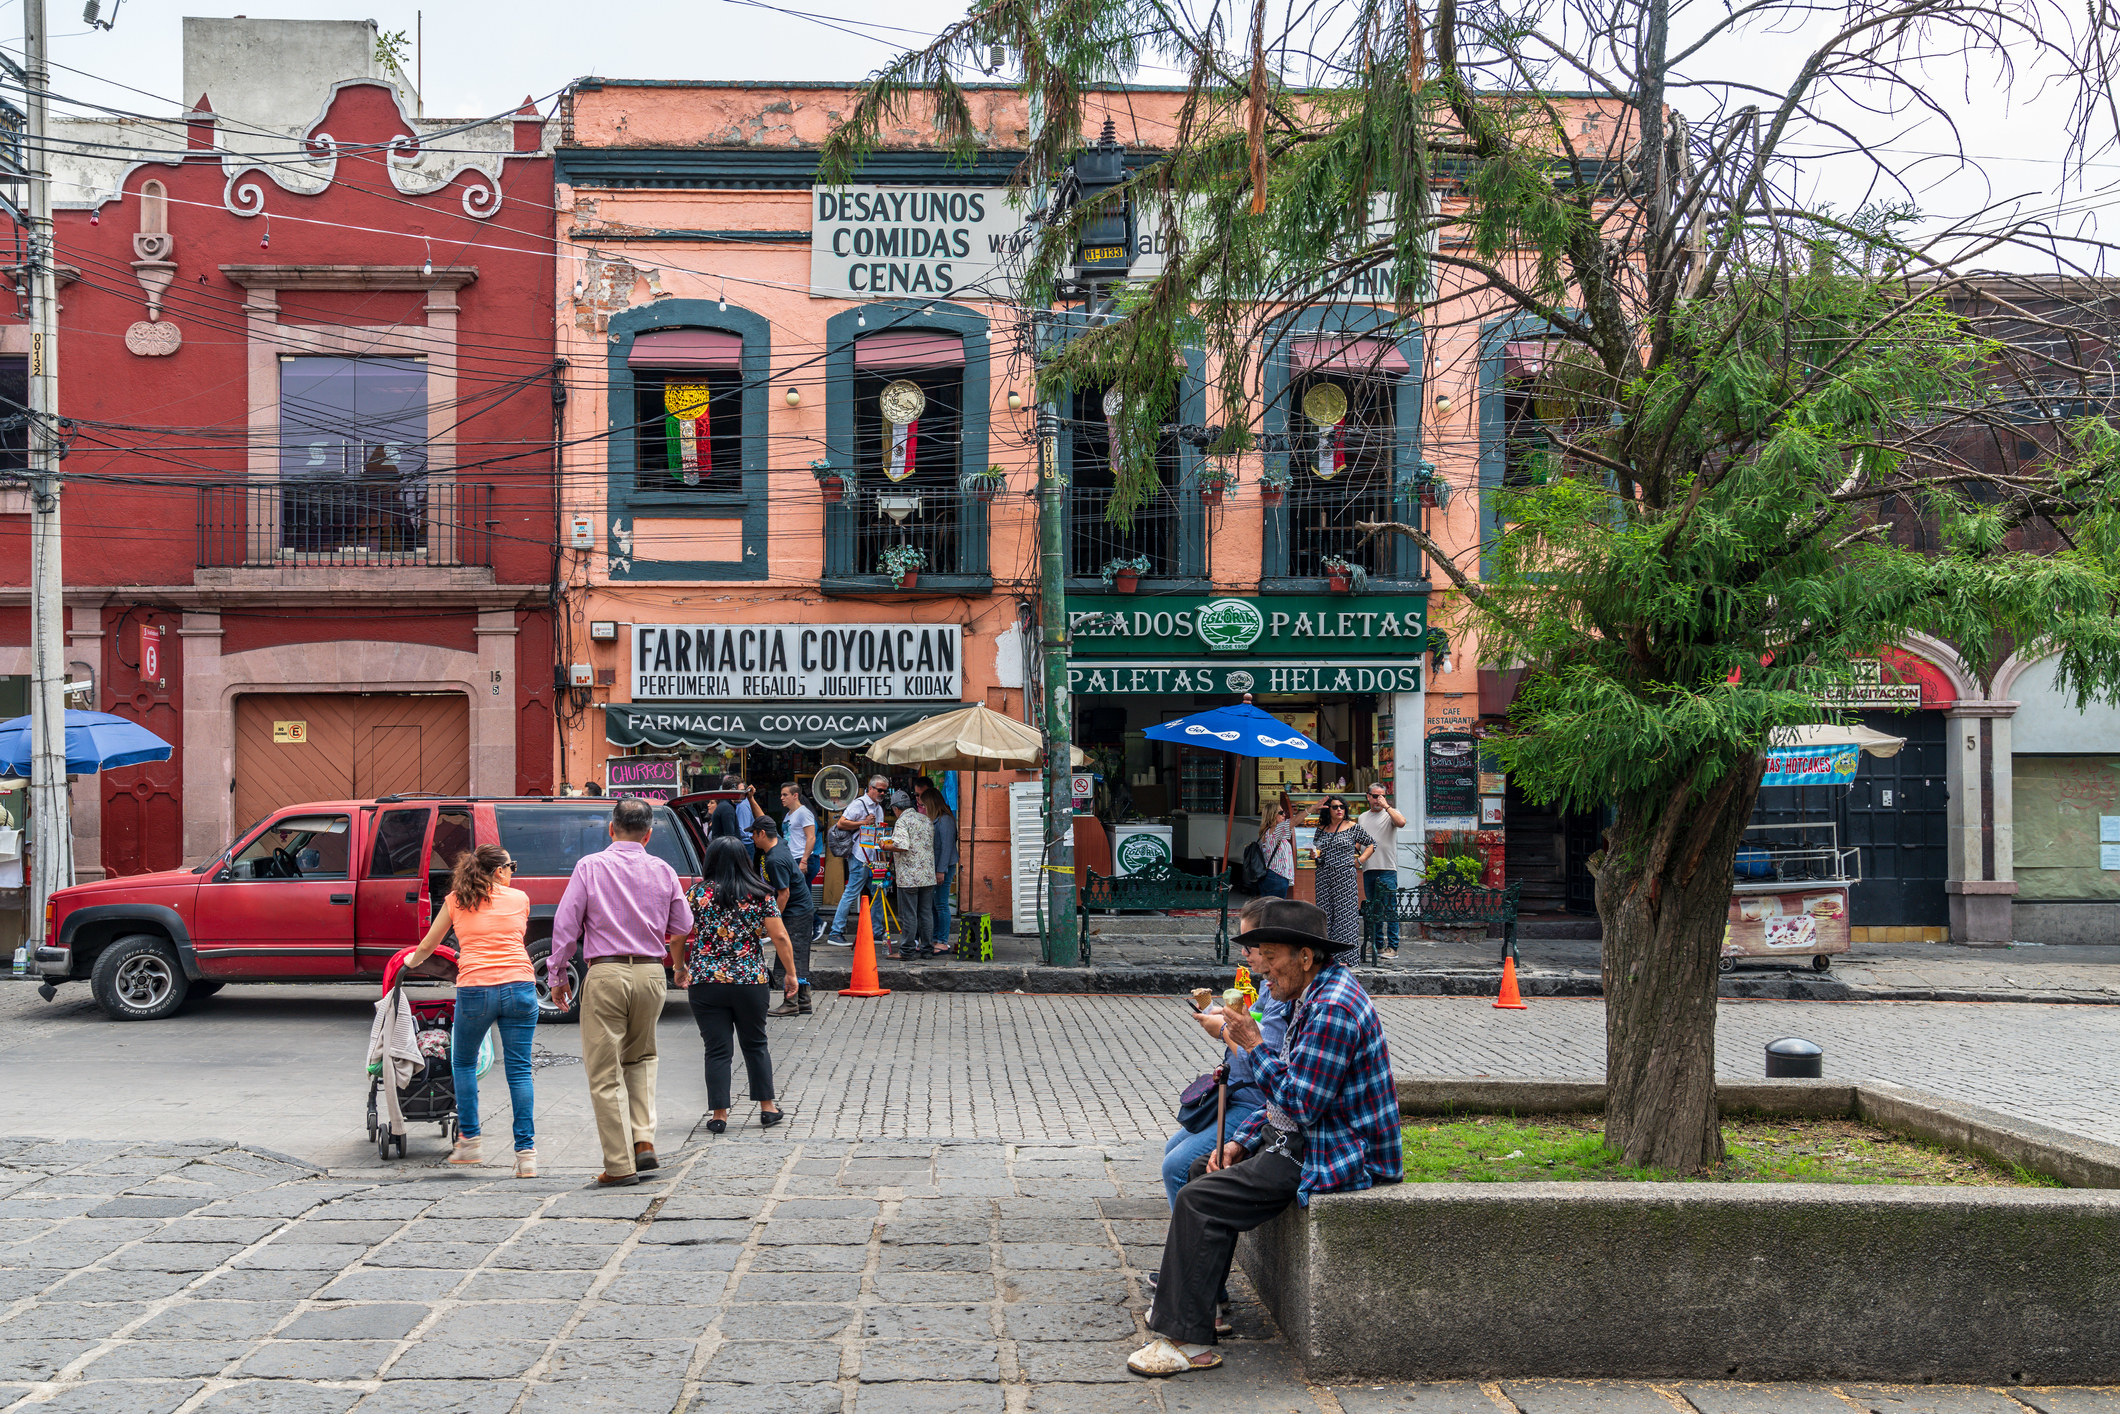 People outside a taqueria in Mexico City.